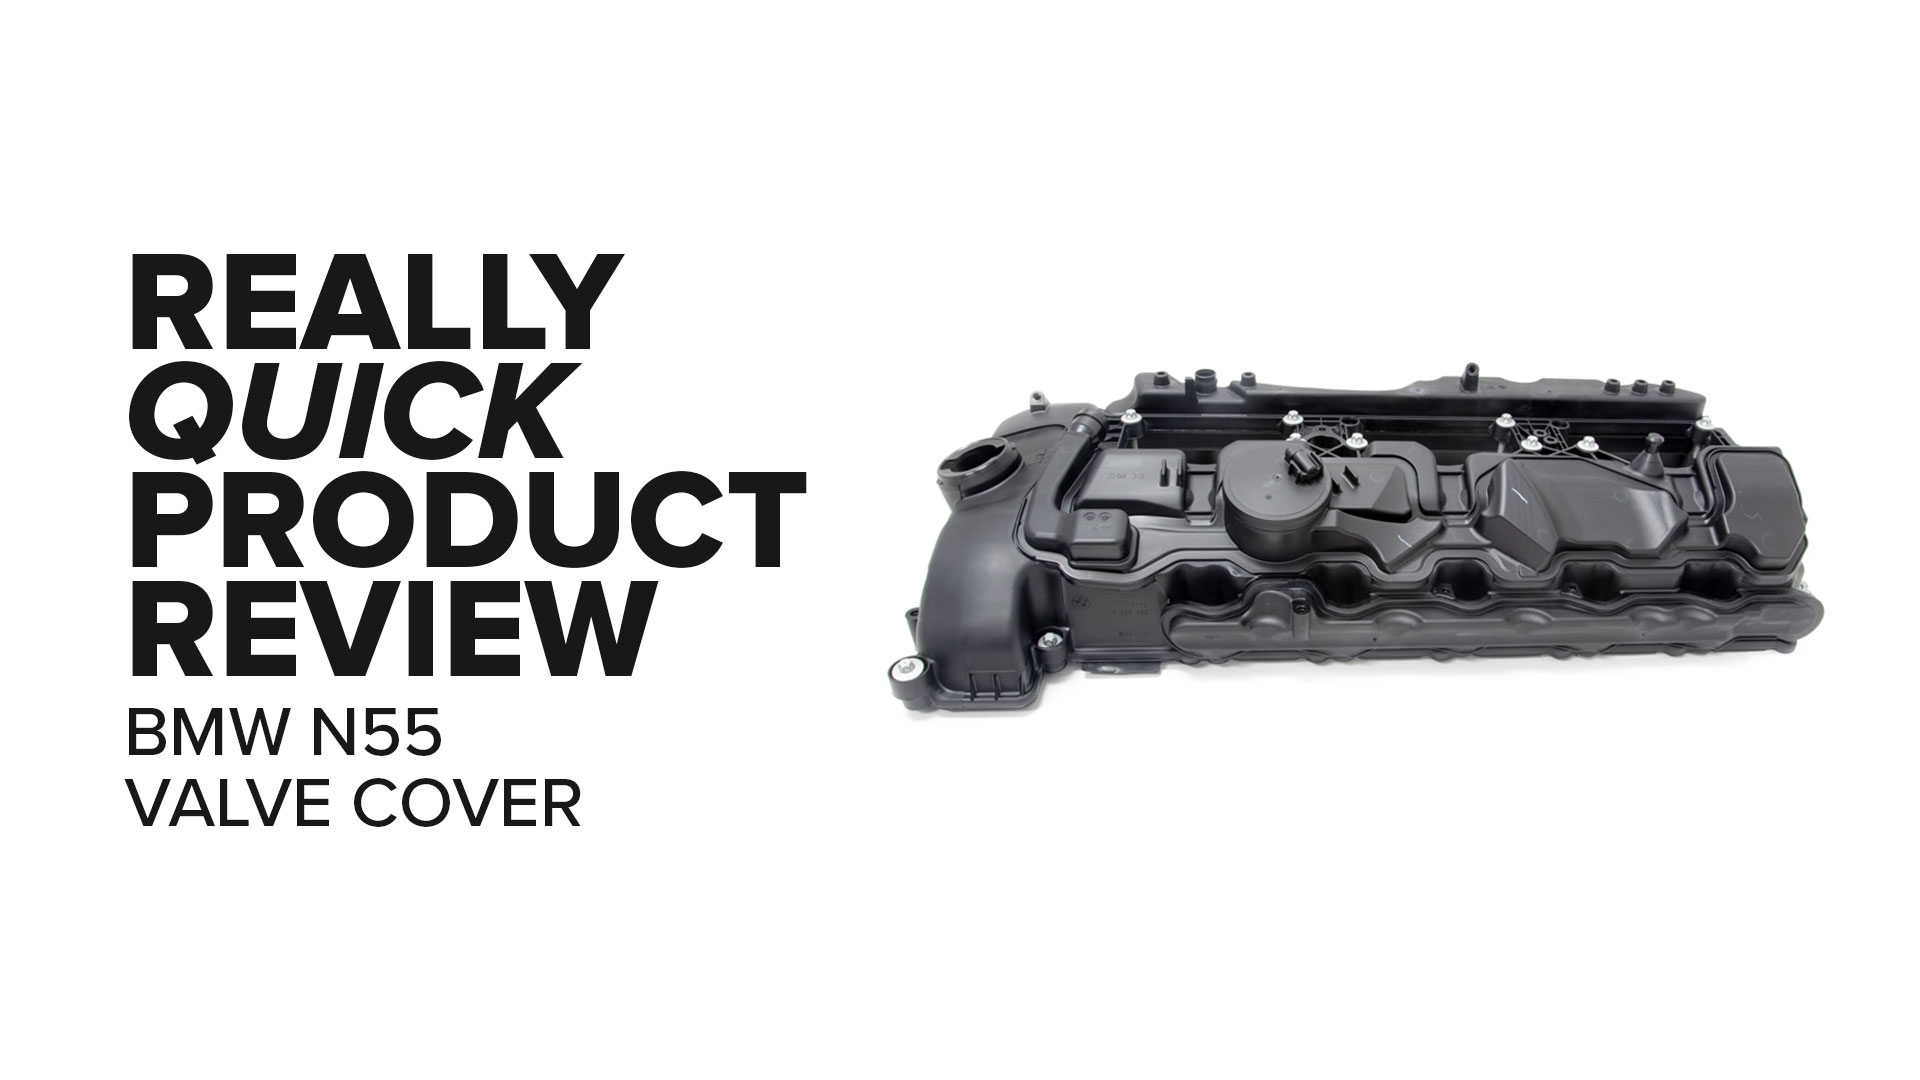 BMW N55 Valve Cover (X5, X3, 335i, & More) - Failures, Symptoms, And Product Review